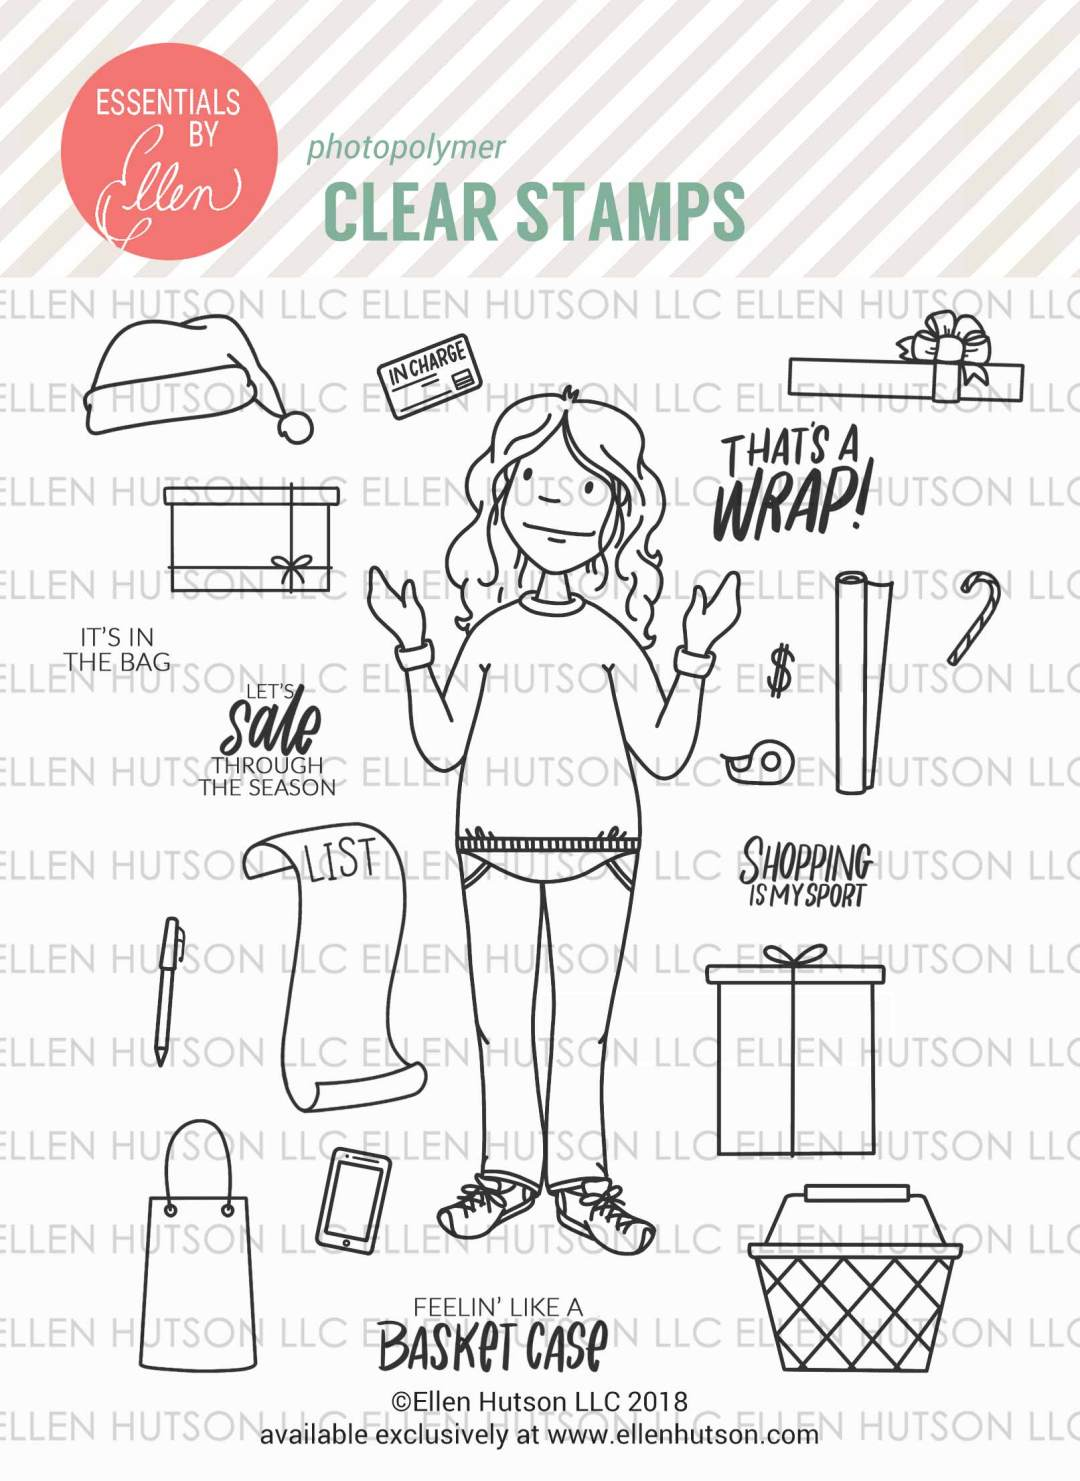 Essentials by Ellen Holiday Shopper Lady Stamps